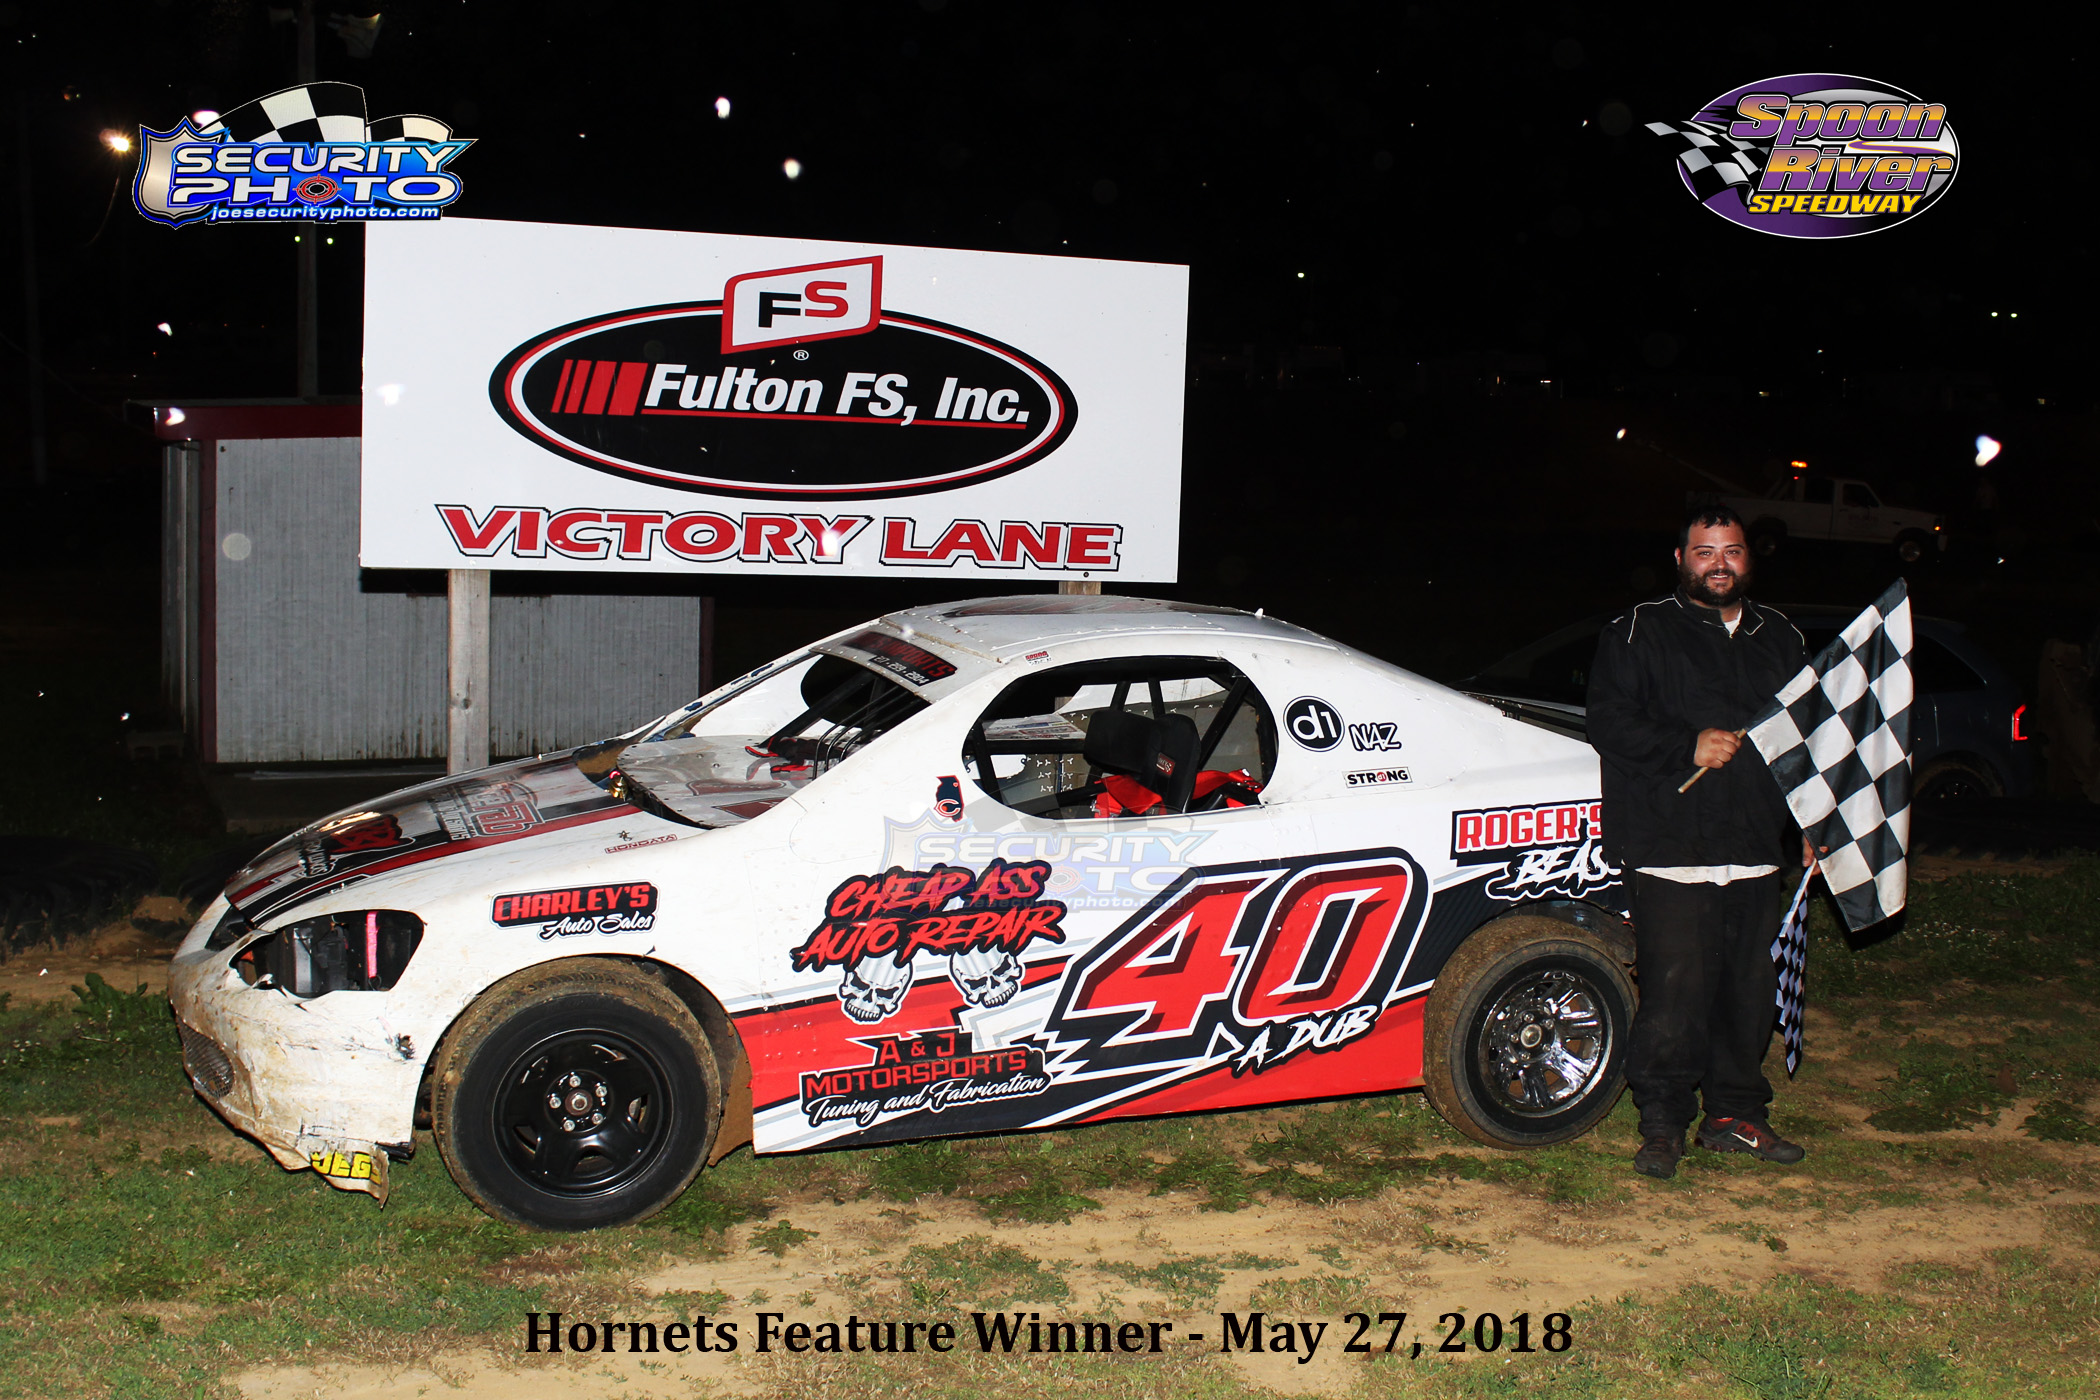 hornets feature winner 5 27